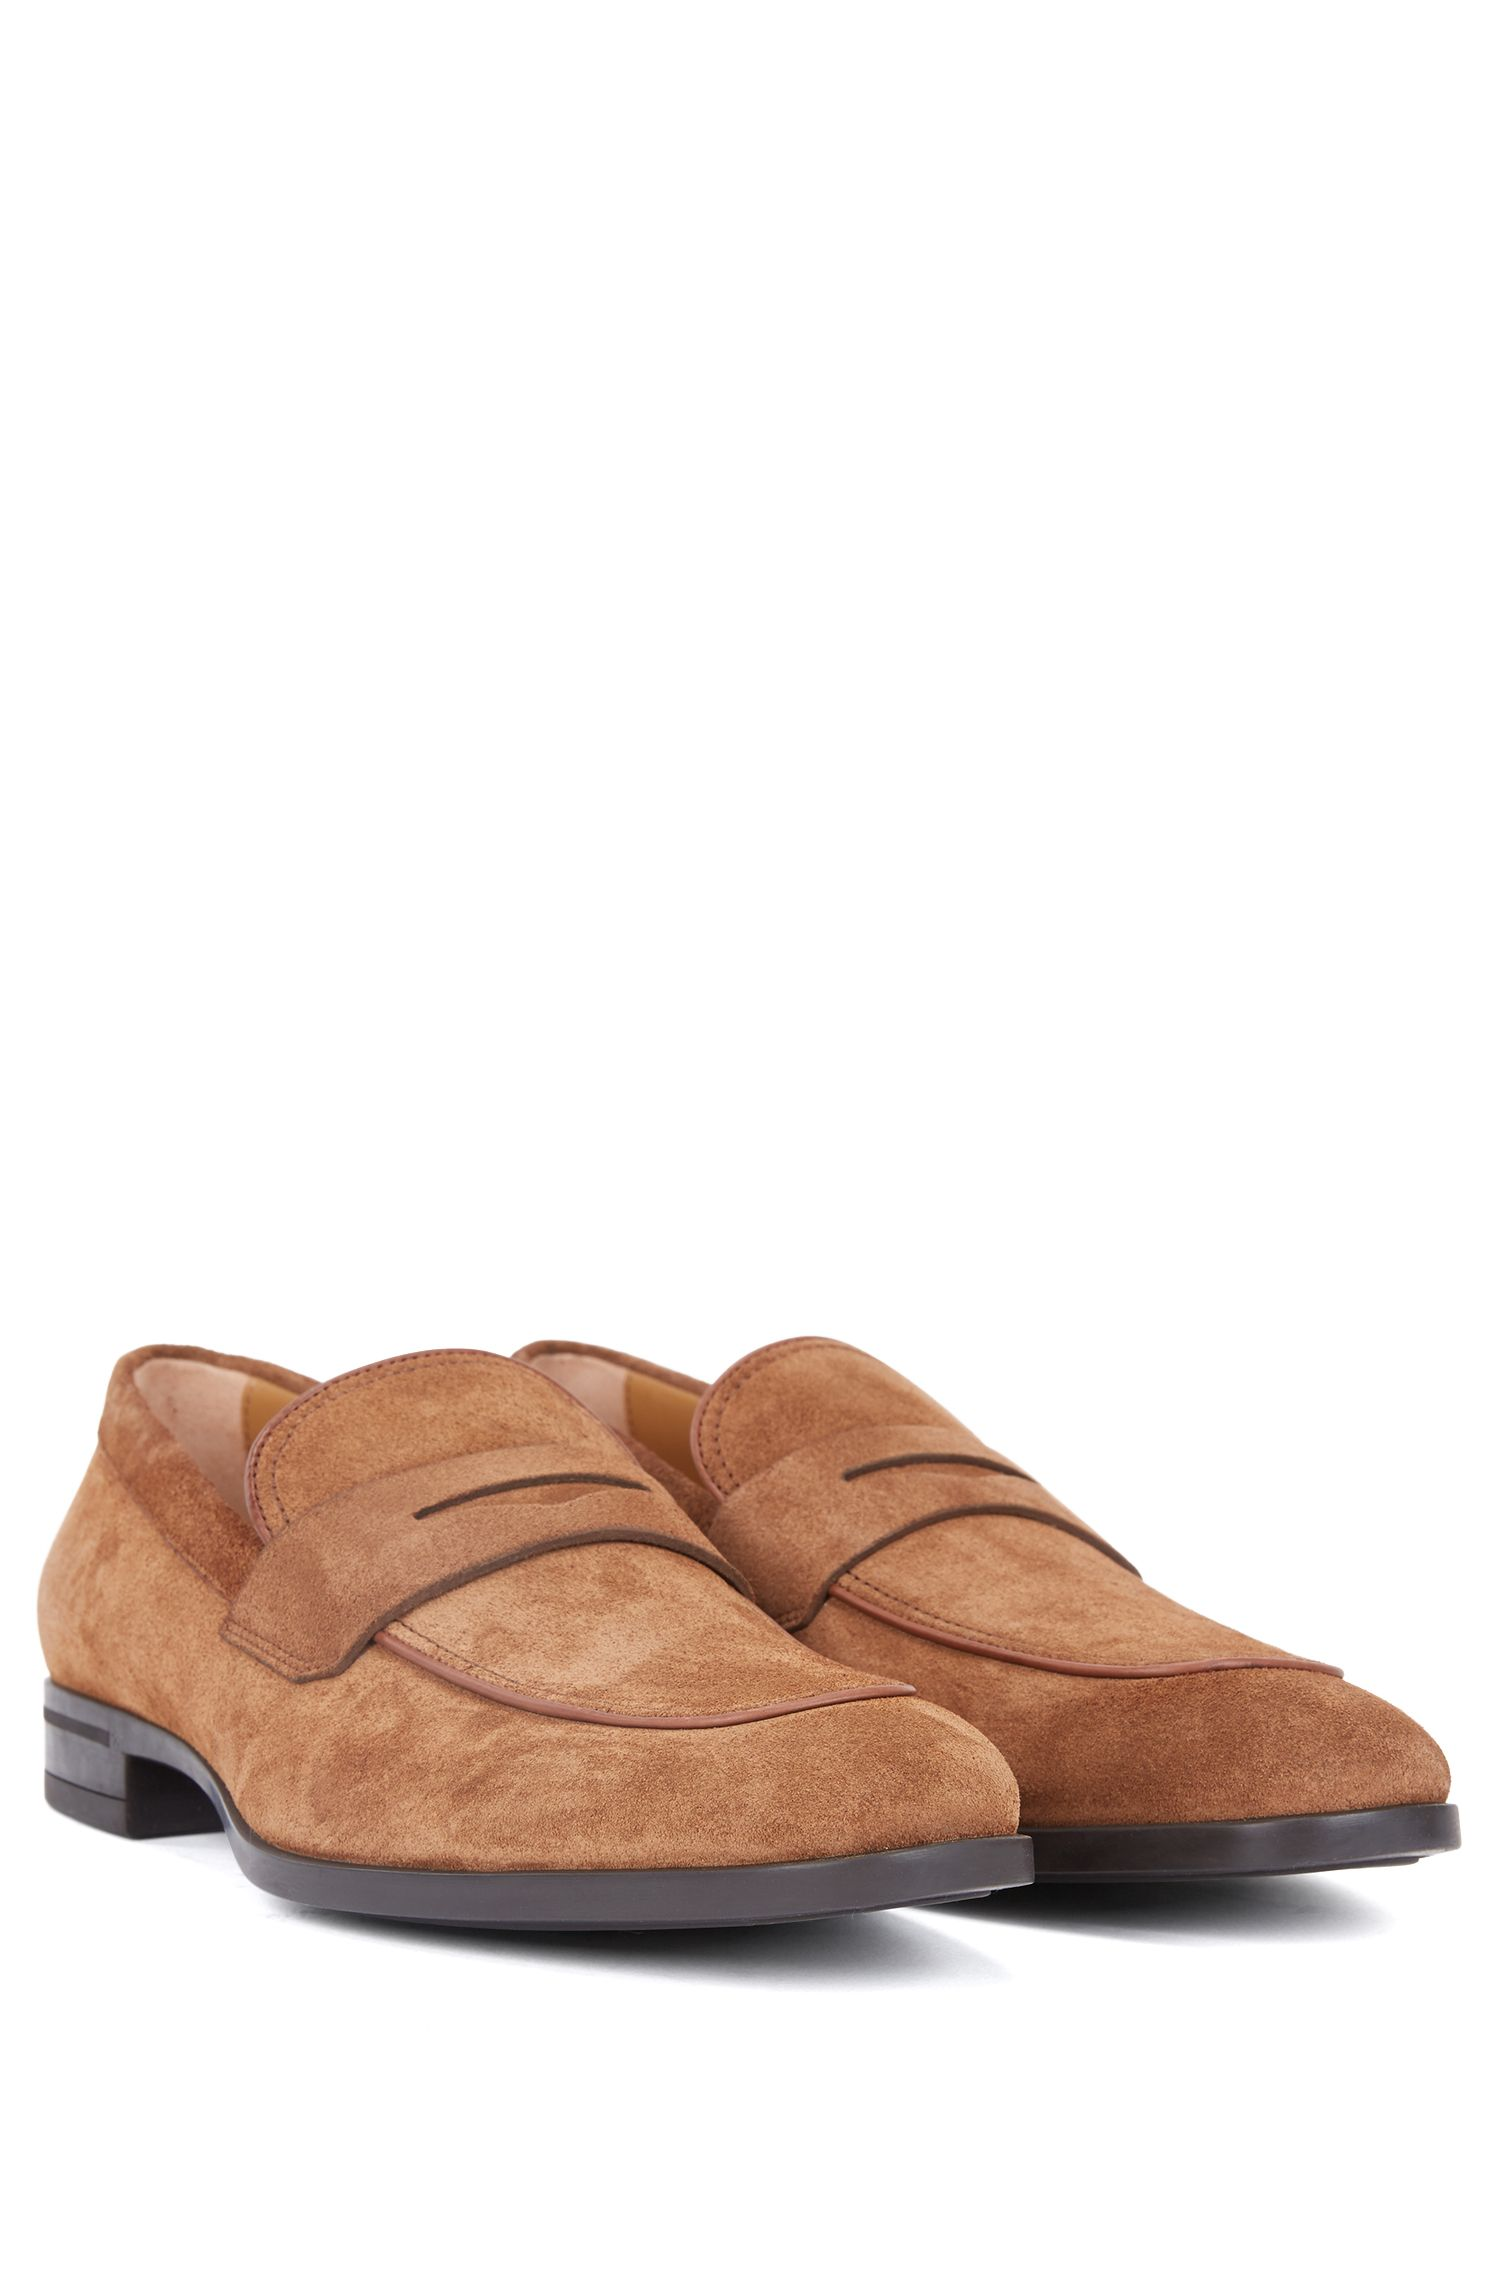 Italian-made penny loafers in soft suede